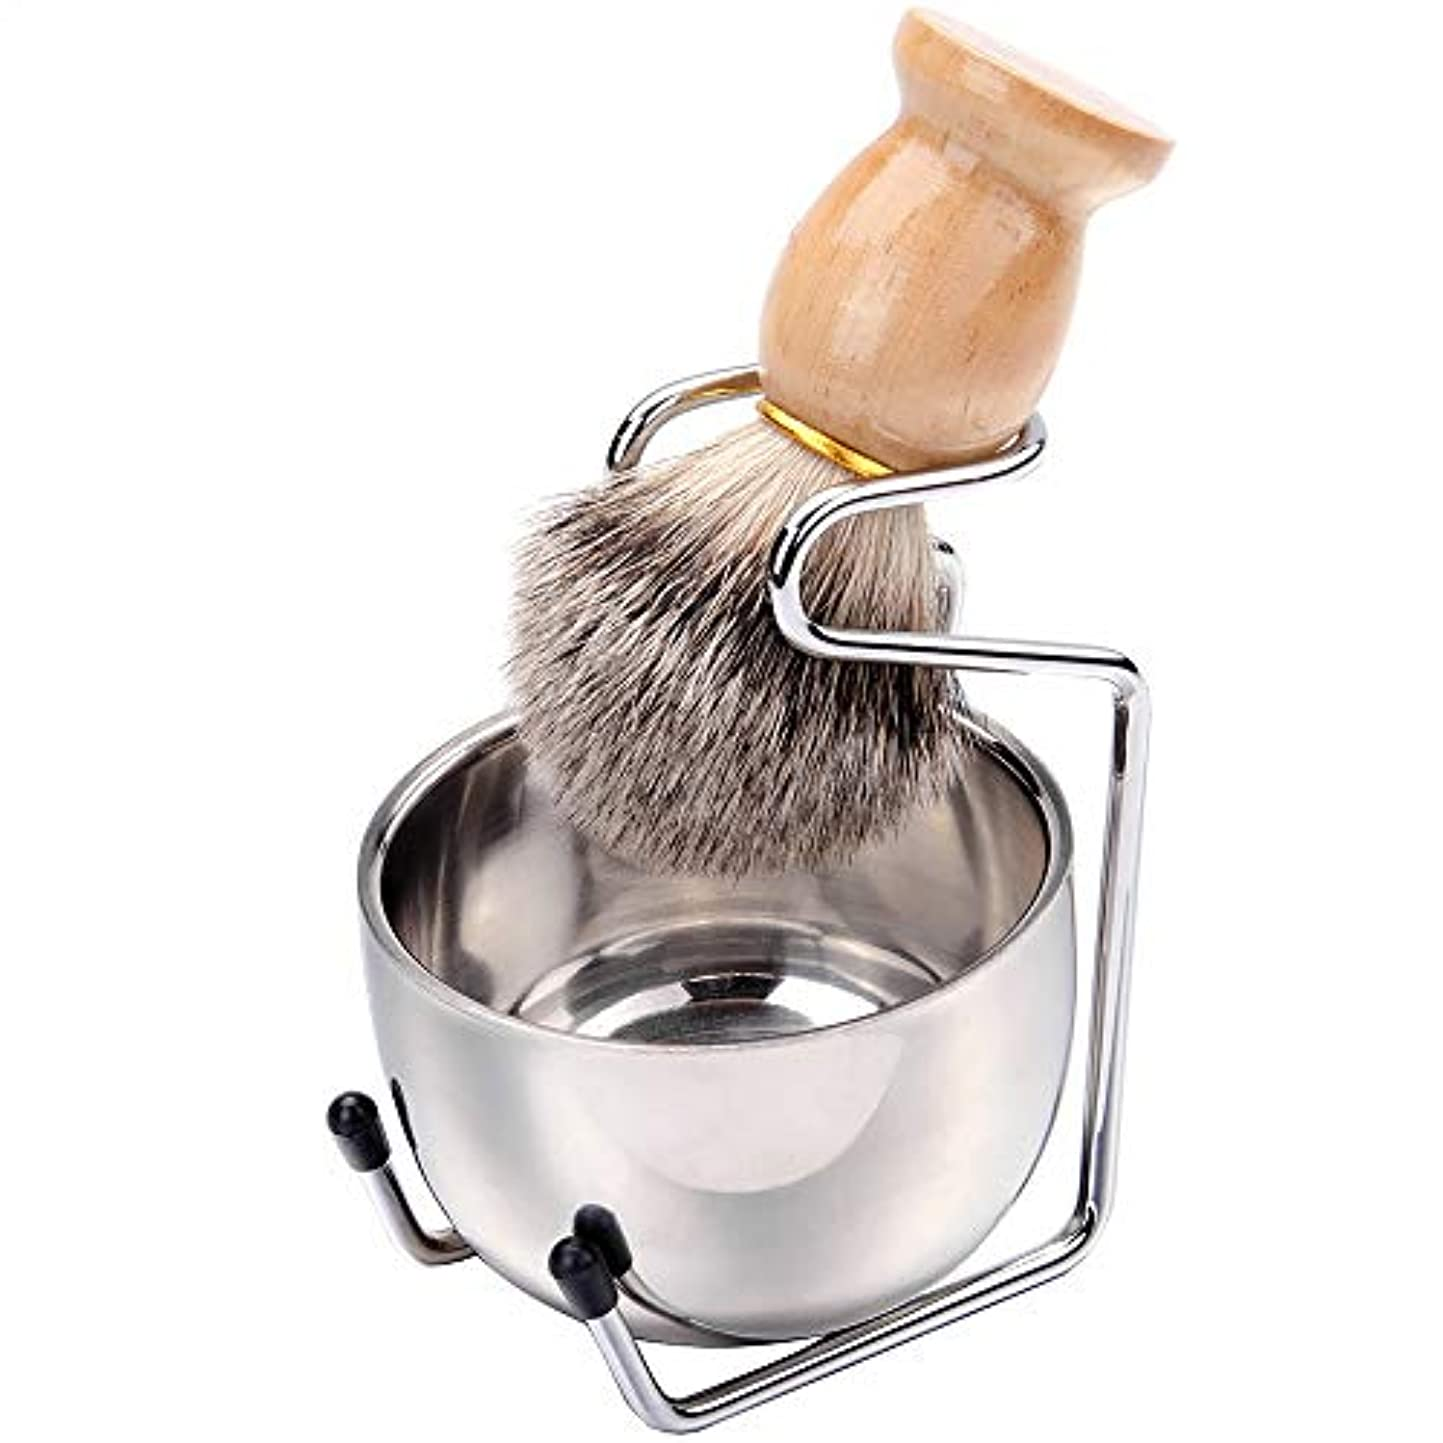 説明協力する意味のあるMen's Shaving Tool, 3-piece Beard Care Set Soap Bowl Hanger Brush Facial